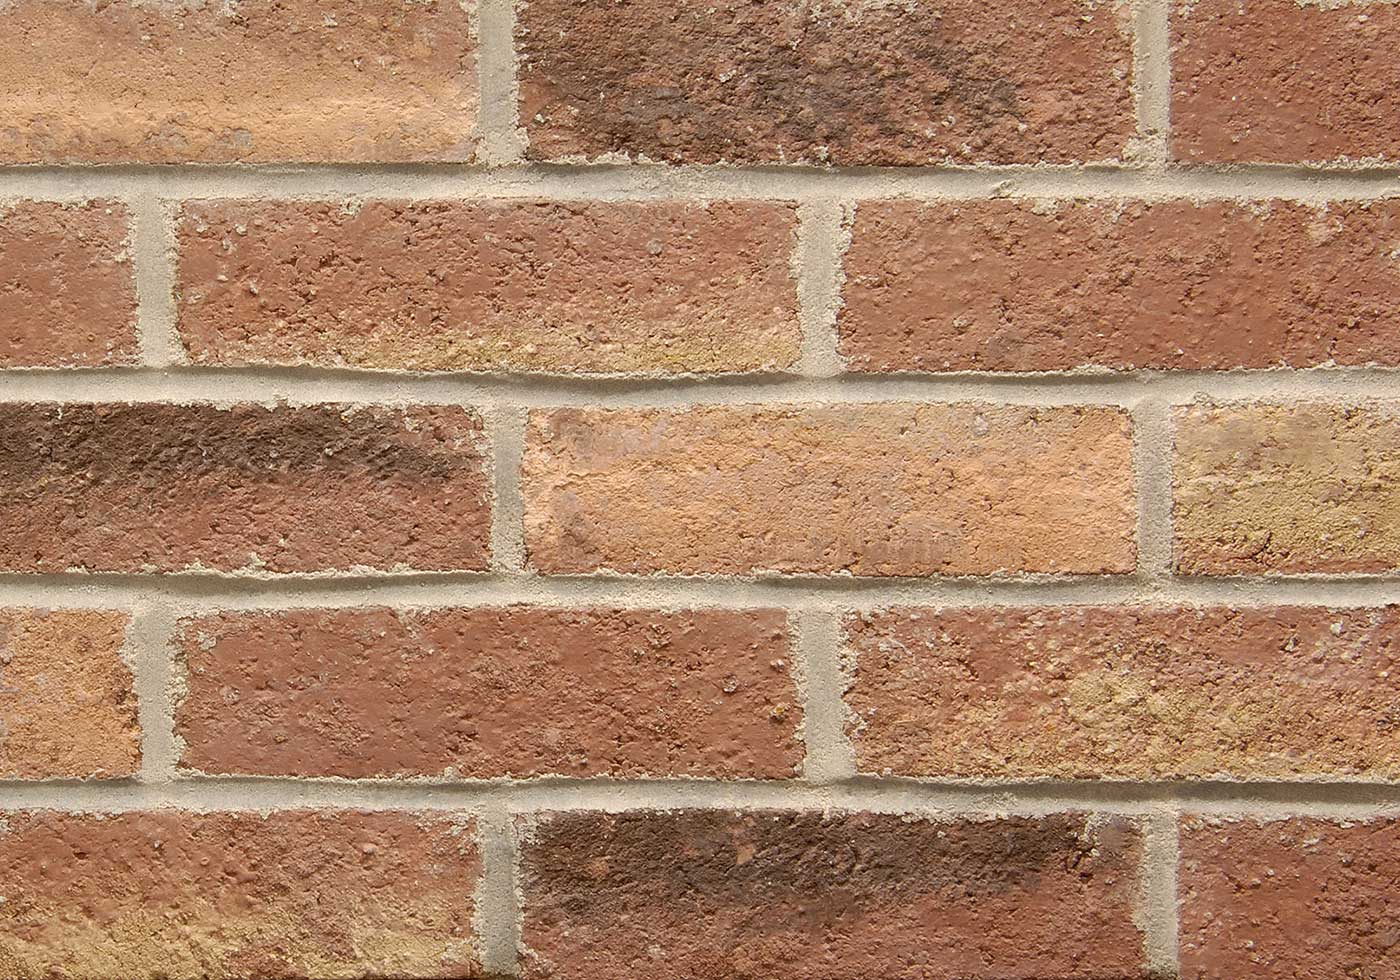 Princeton brick close-up